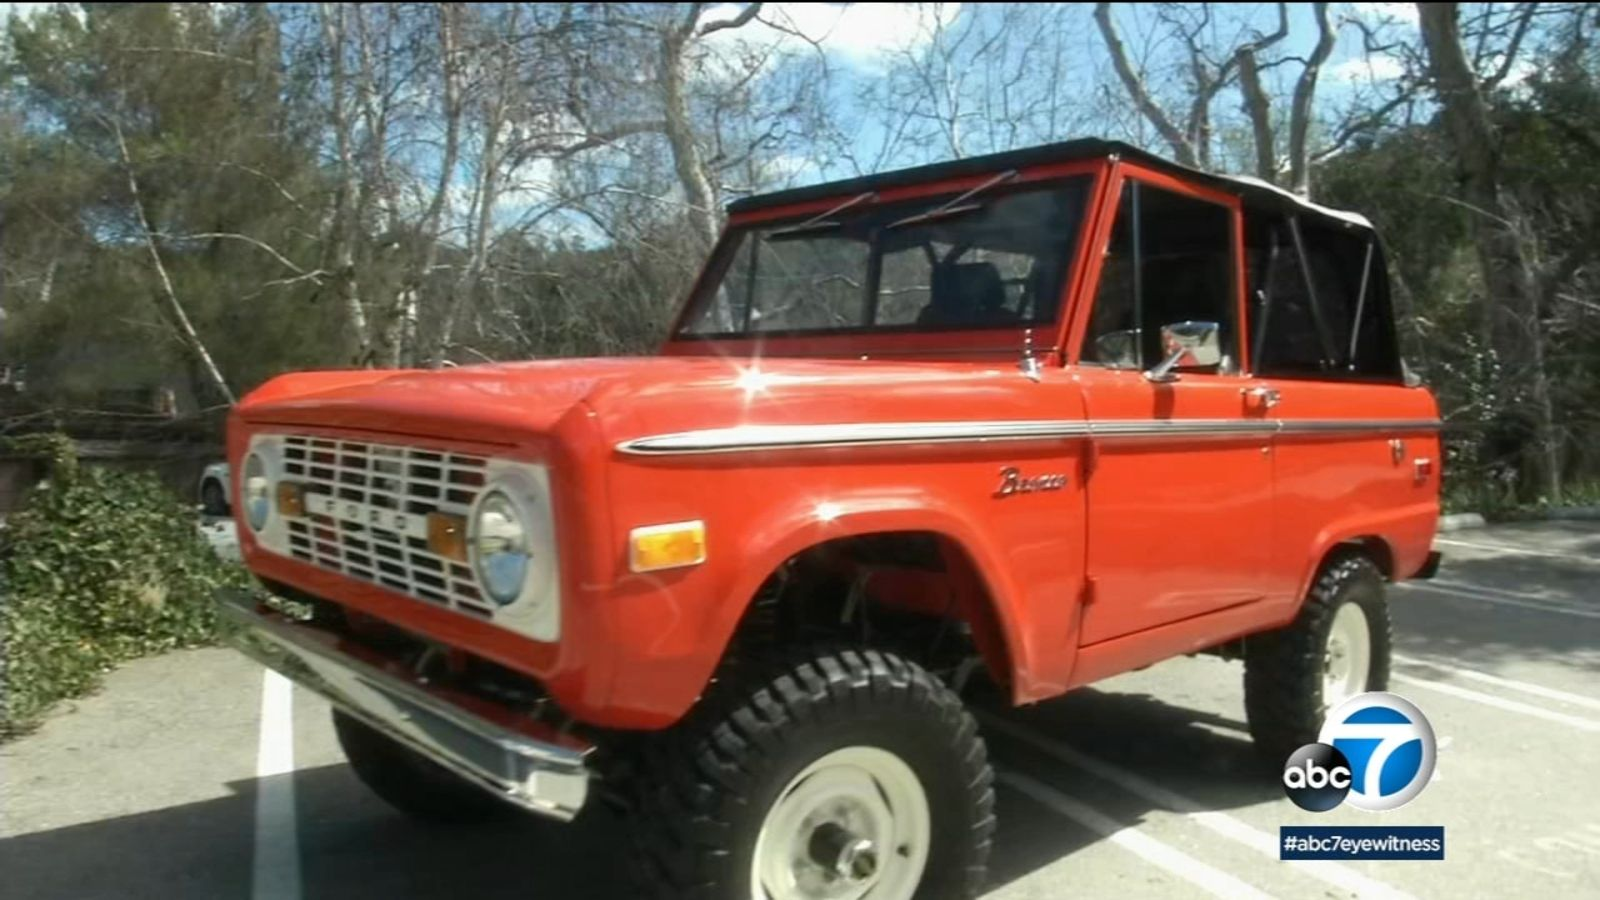 1970 Ford Bronco For Sale Near Tampa Florida 33629 Classics On Autotrader Ford Bronco Ford Bronco For Sale